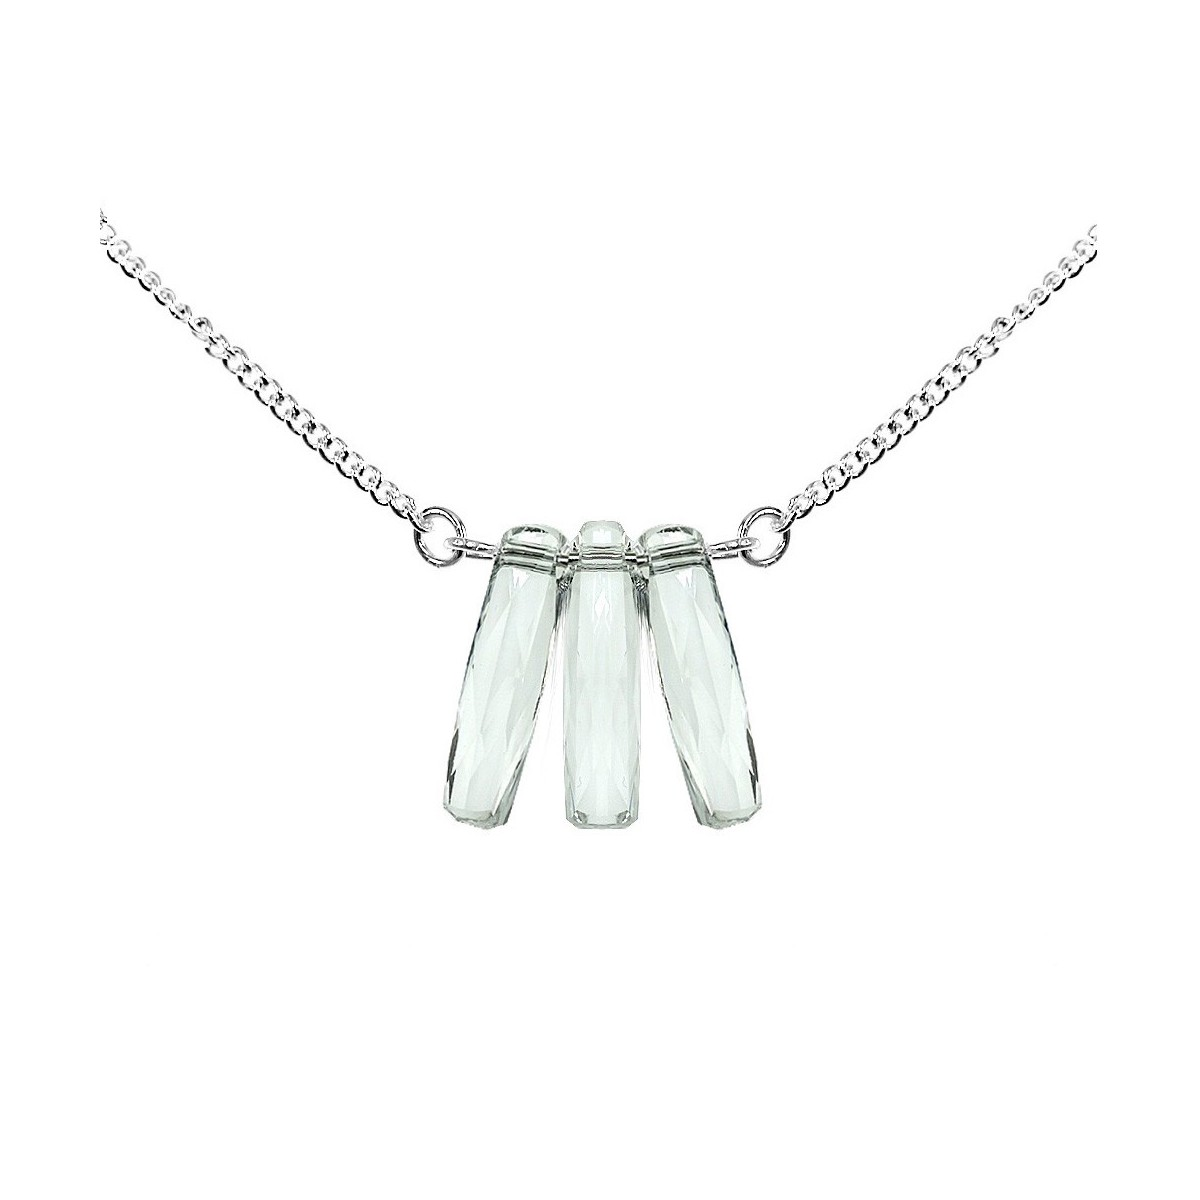 B672 Collier plaqué argent So Charm orné de cristaux SWAROVSKI® ELEMENTS blancs